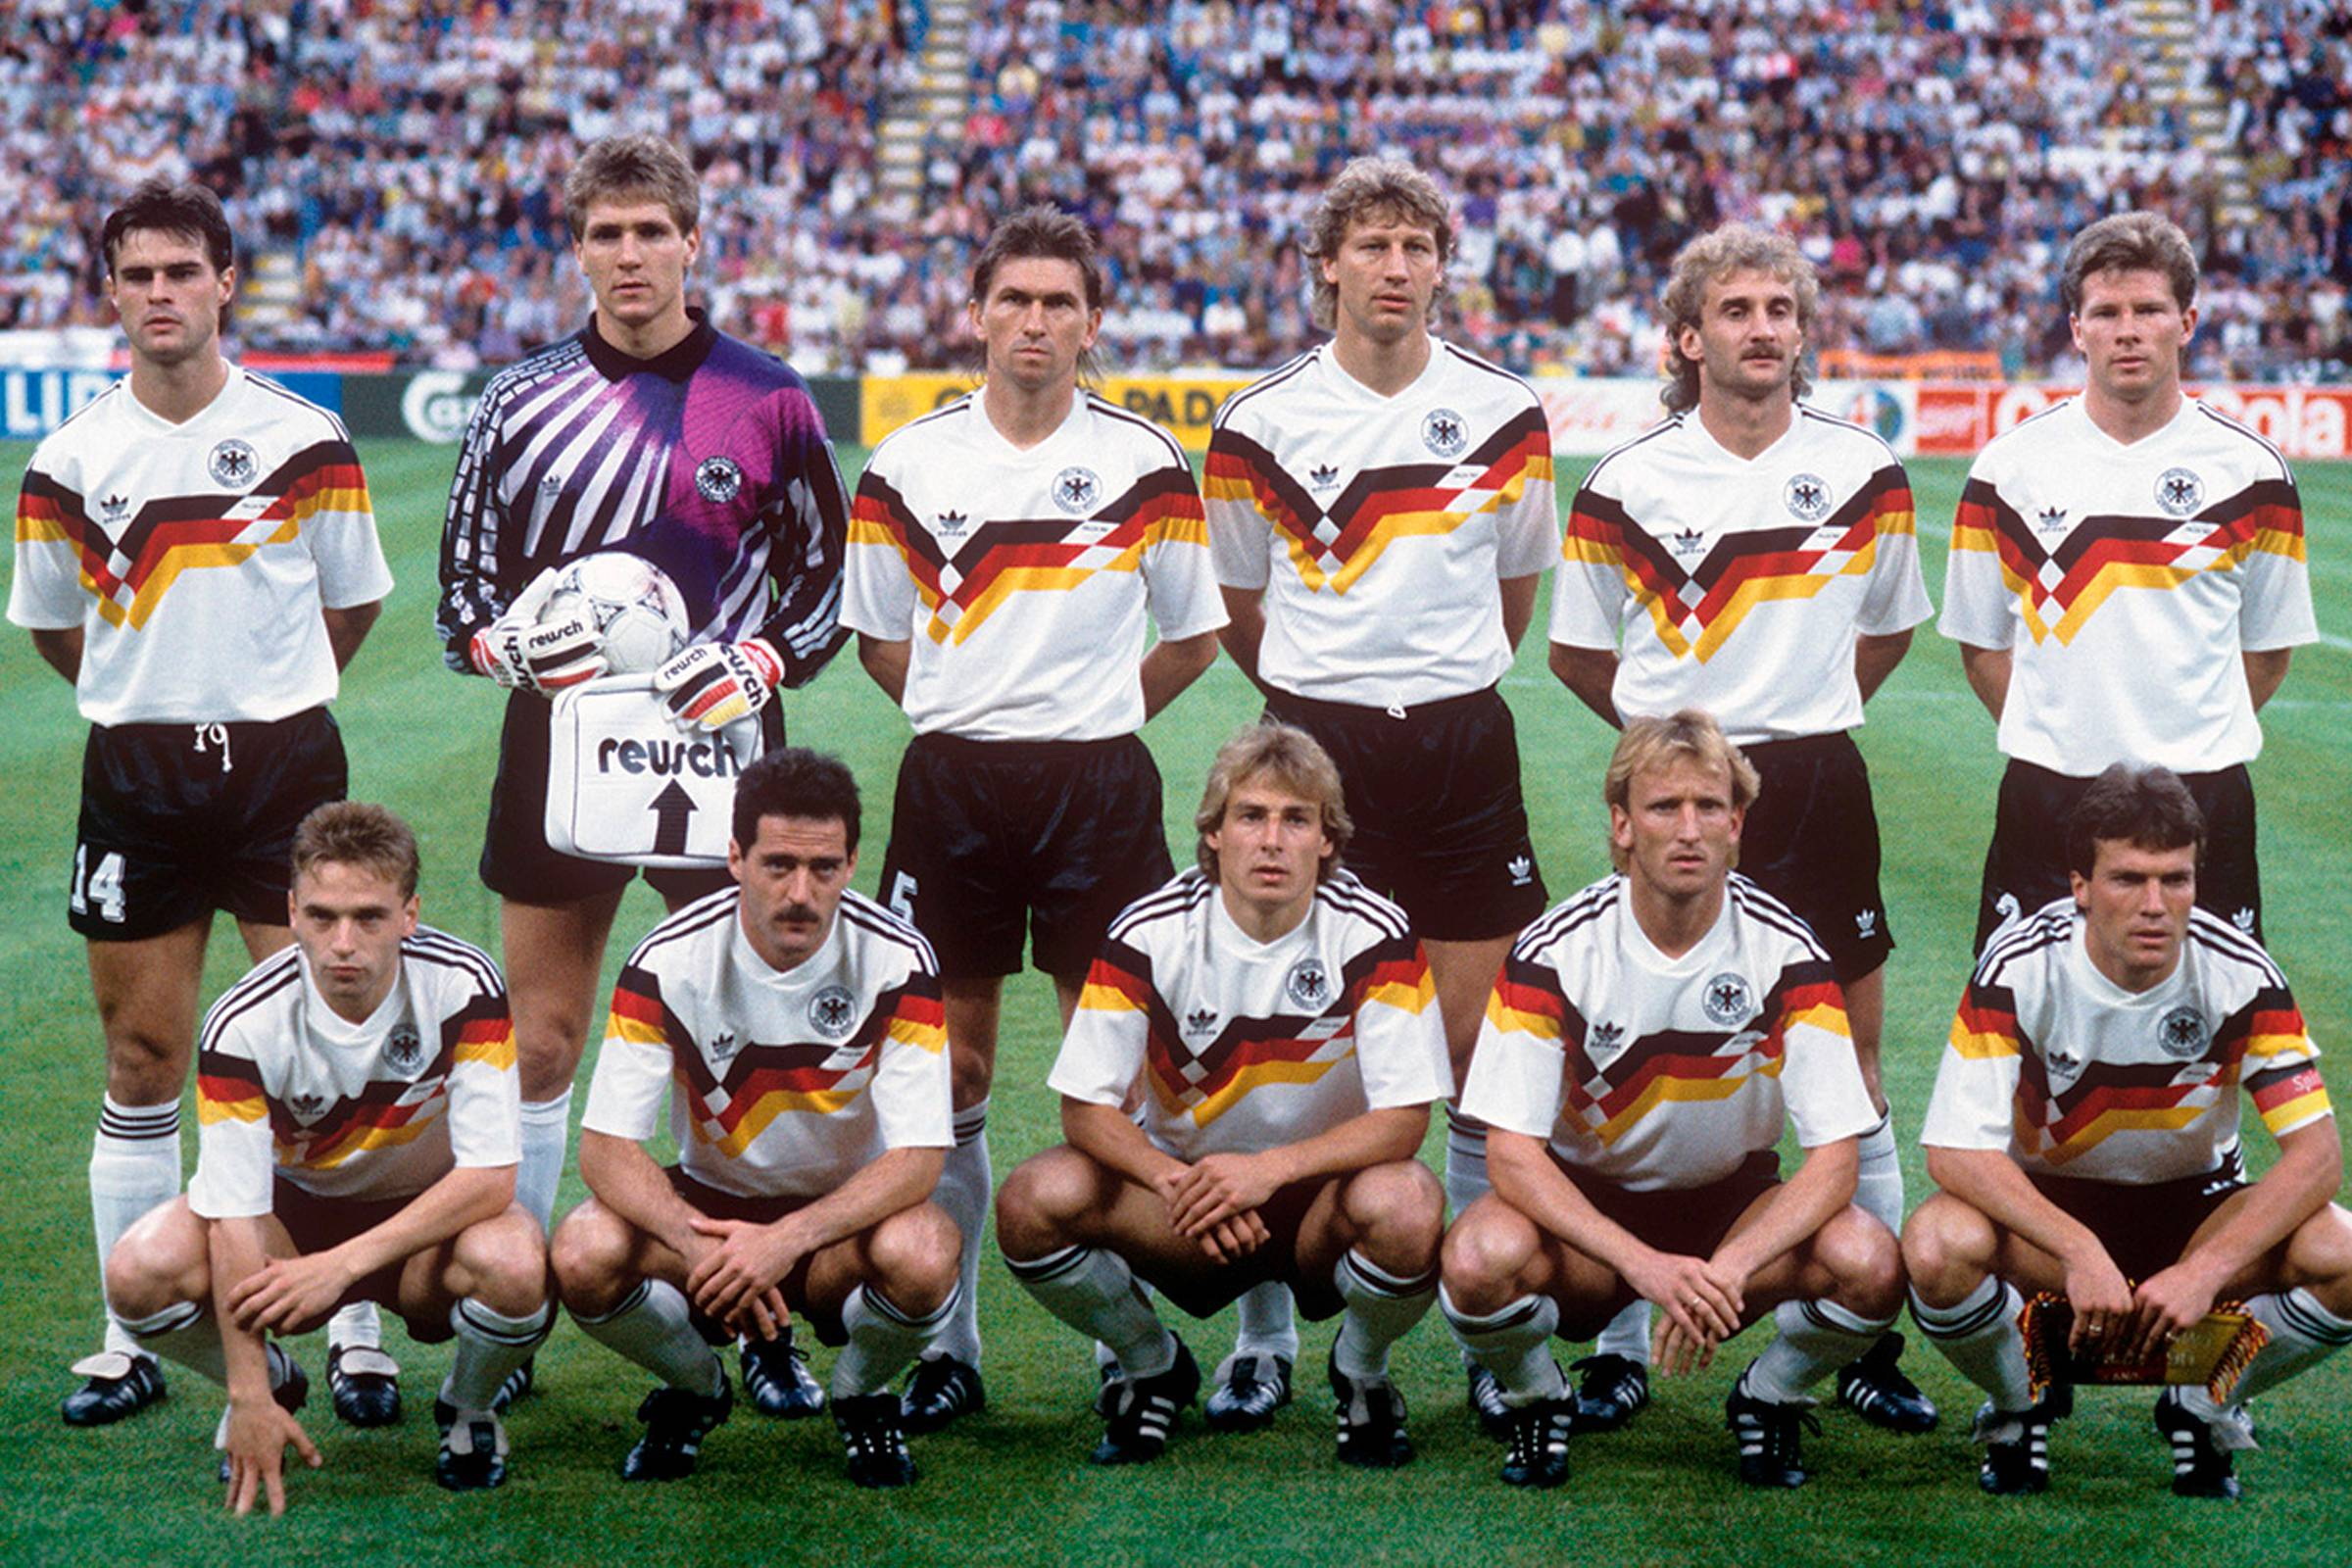 d331b0ed1 Speaking of Italia '90, West Germany's kit from that tournament is,  arguably, one of the most well-known jerseys of all time, thanks to adidas'  timeless ...